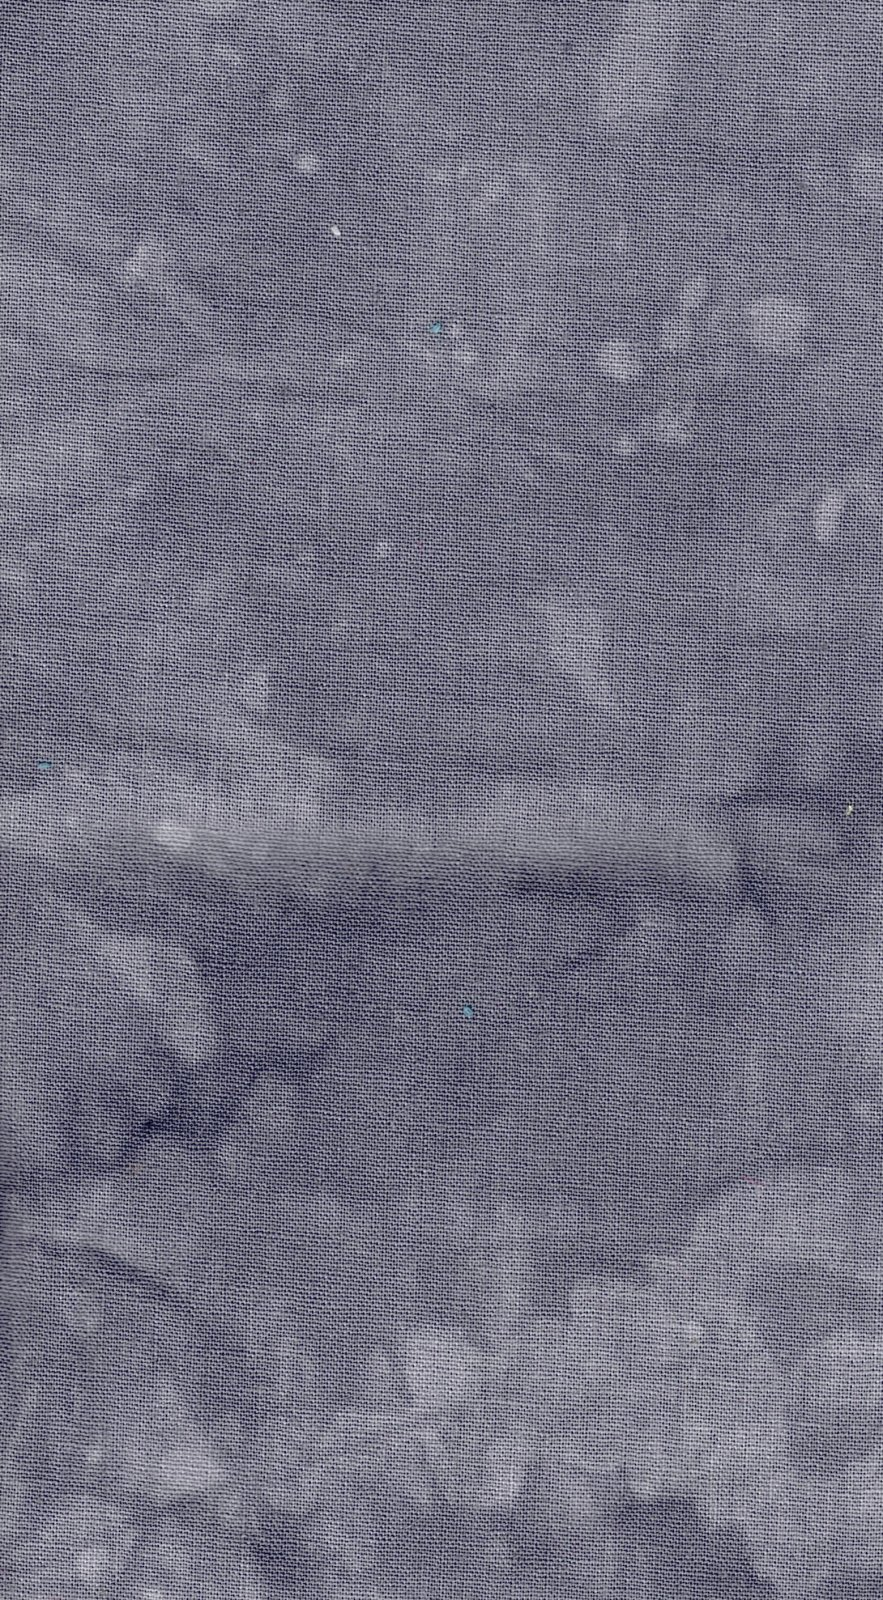 Slate Hand-Dyed Linen Fat Quarter